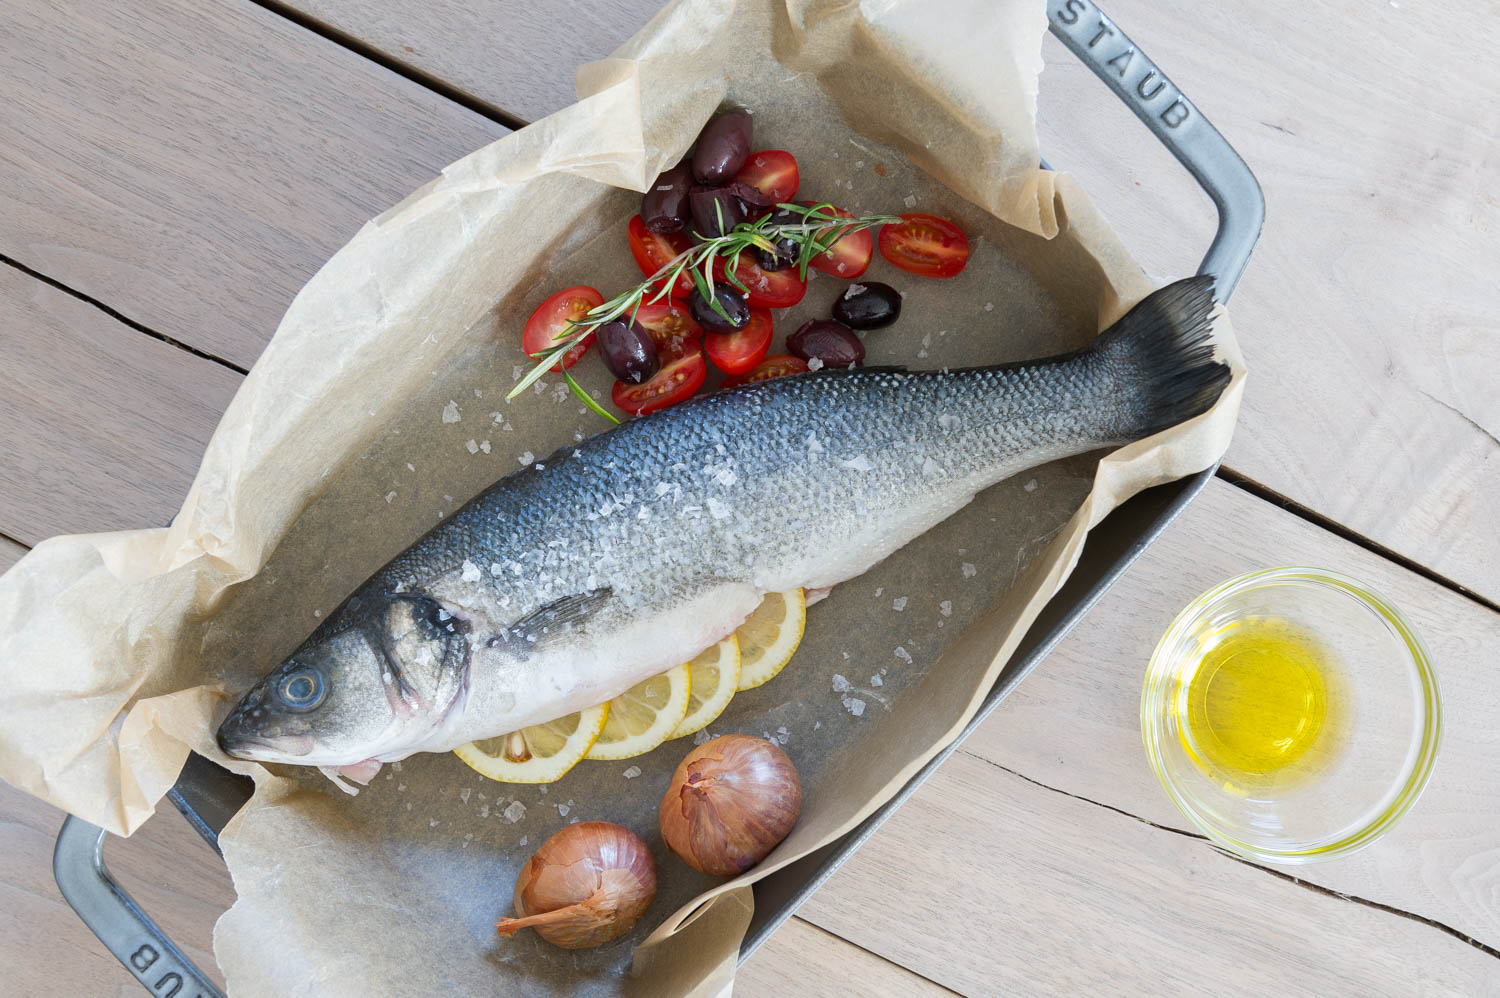 Roasted whole fish with olives. tomatoes and herbs recipe by Eat Real Food